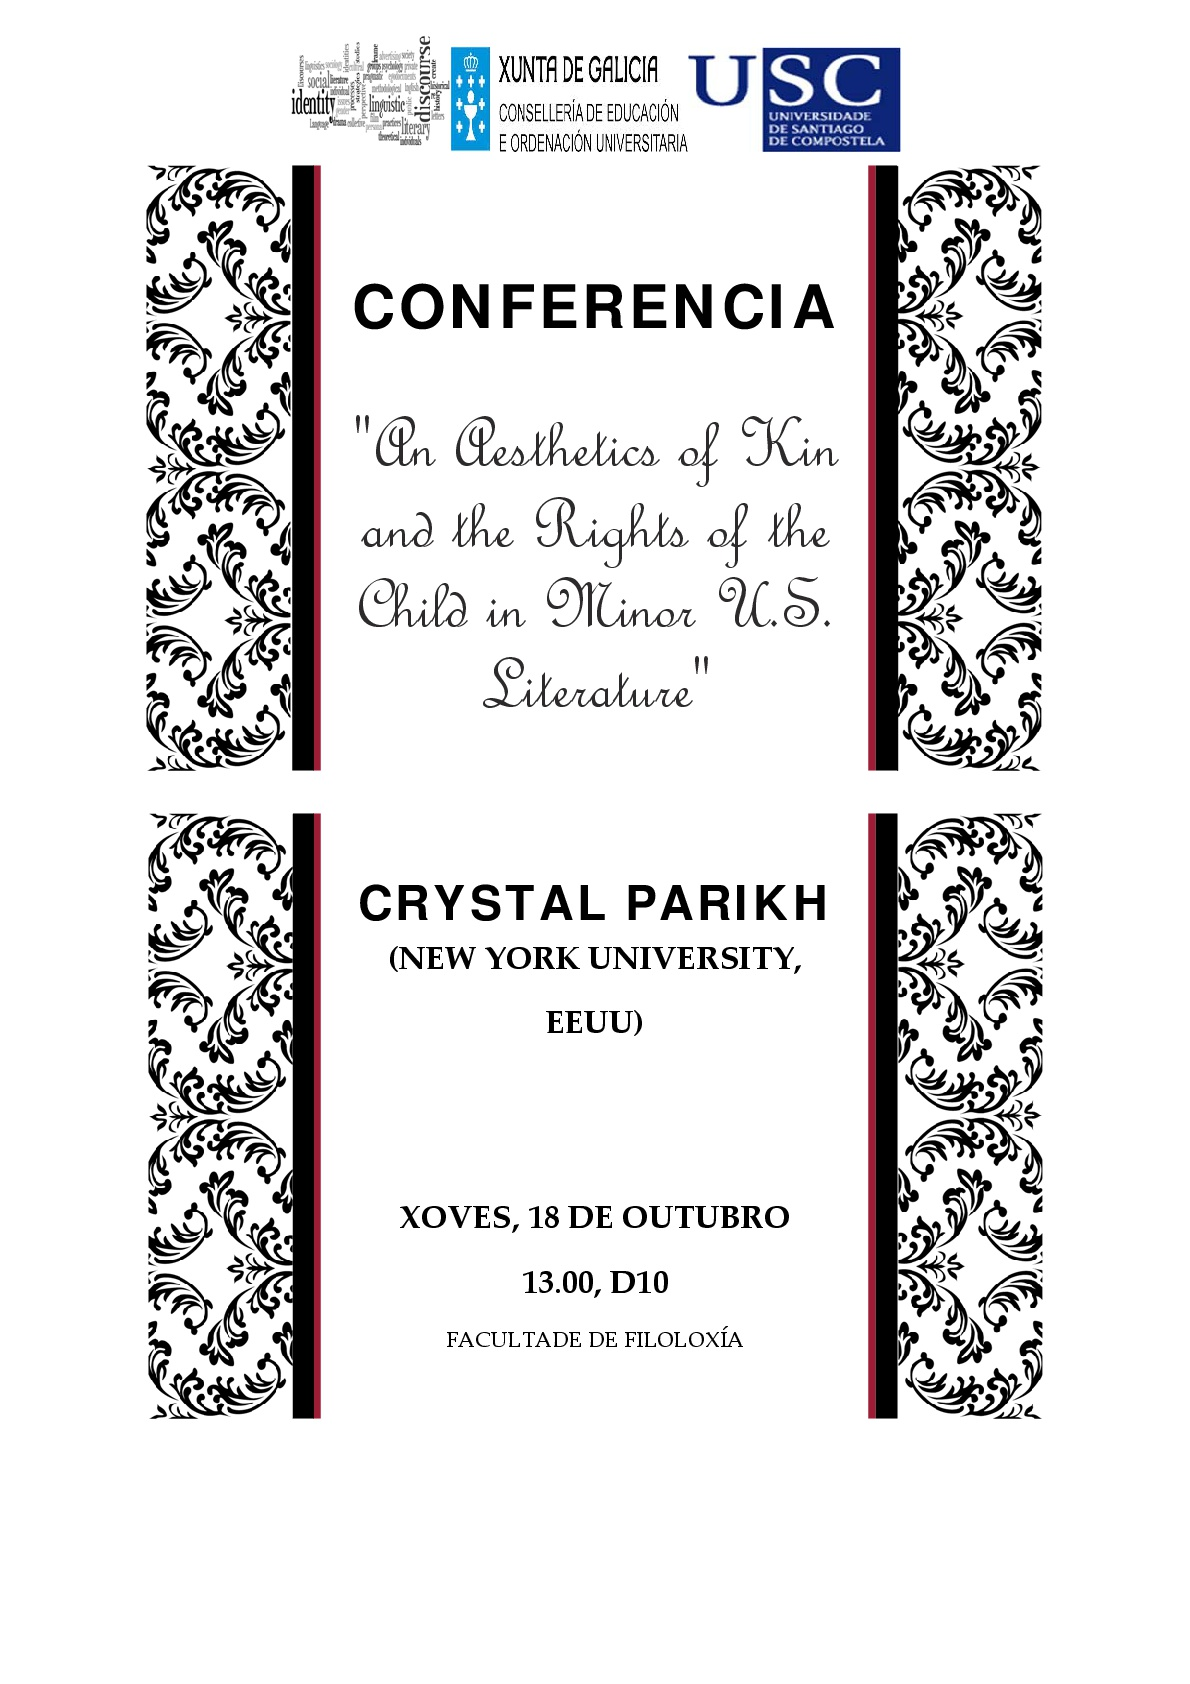 CONFERENCIA_PARIKH_CARTAZ-001